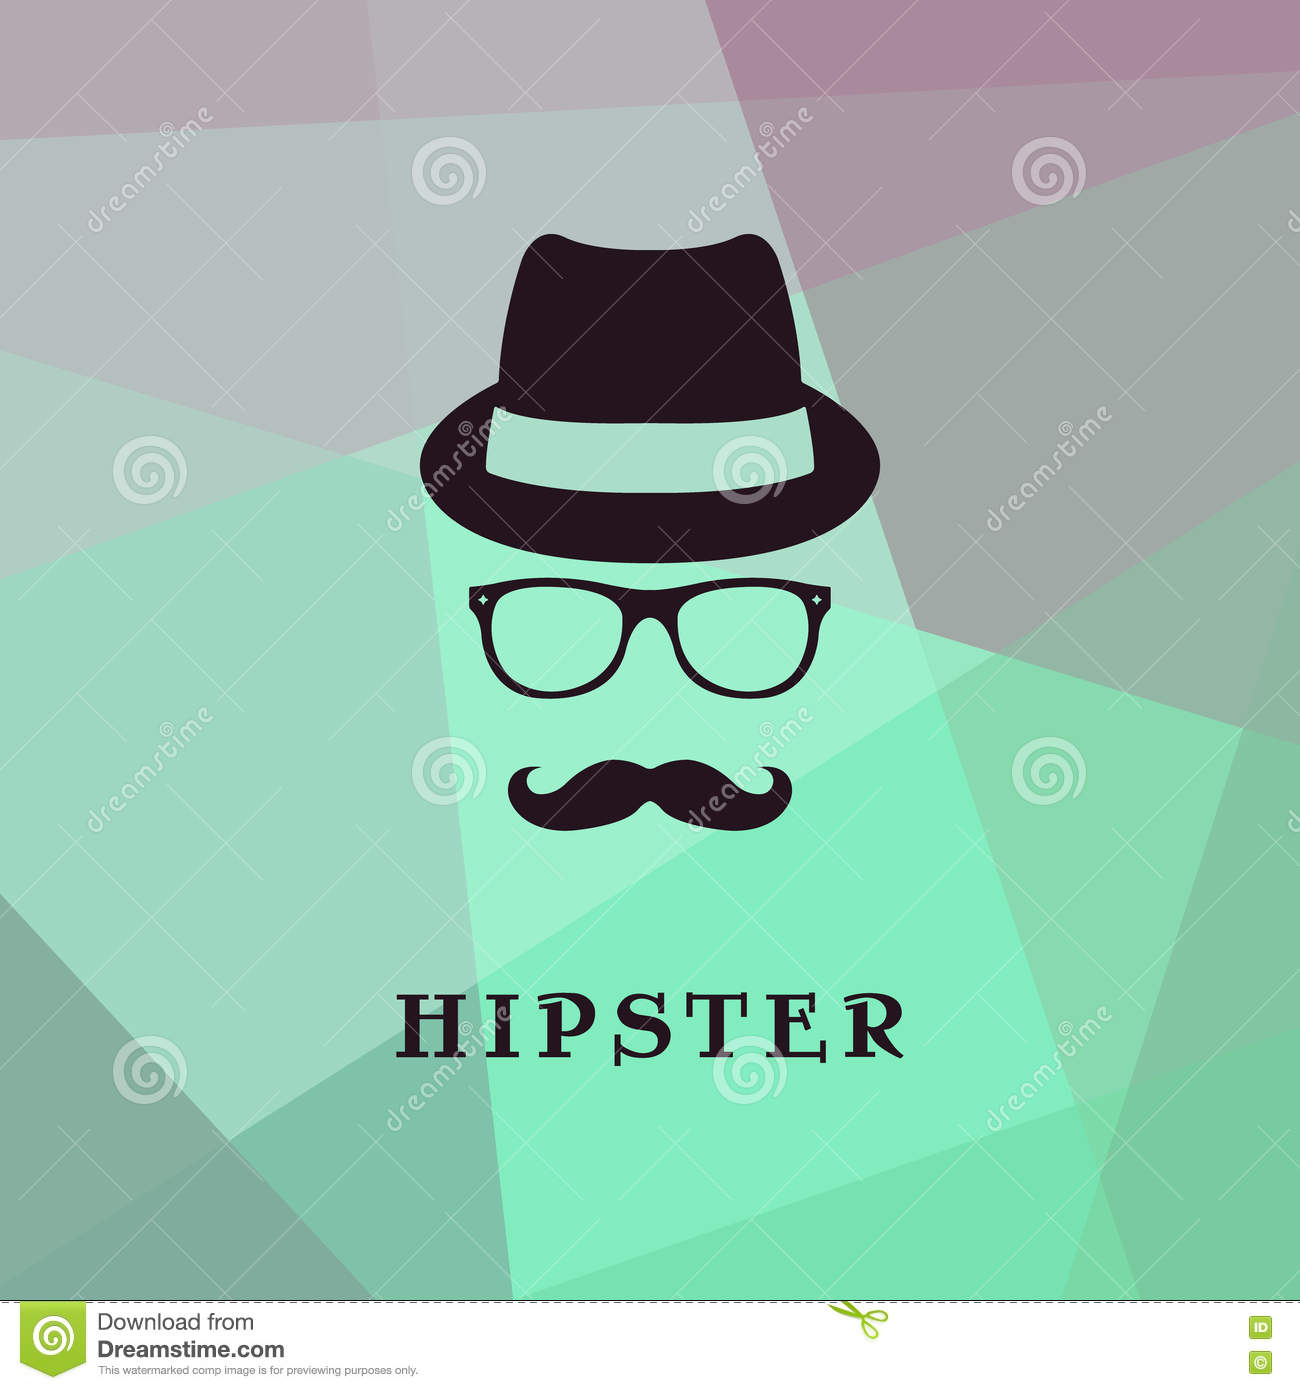 85399c849 Hipster face logo. stock vector. Illustration of background - 75749804